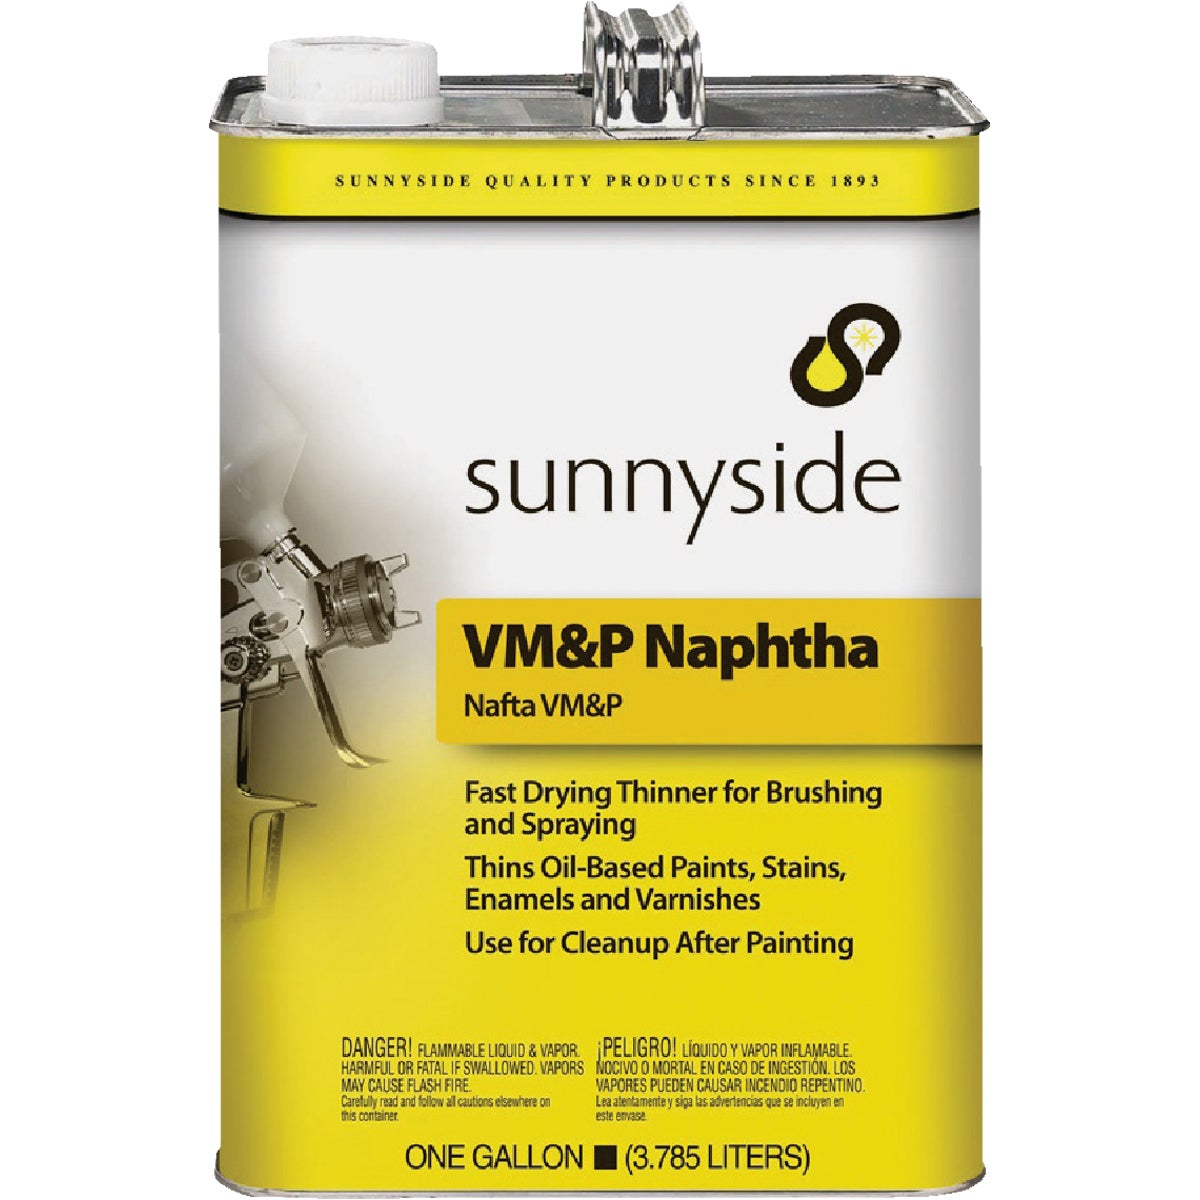 NAPHTHA SOLVENT - 800G1 by Sunnyside Corp